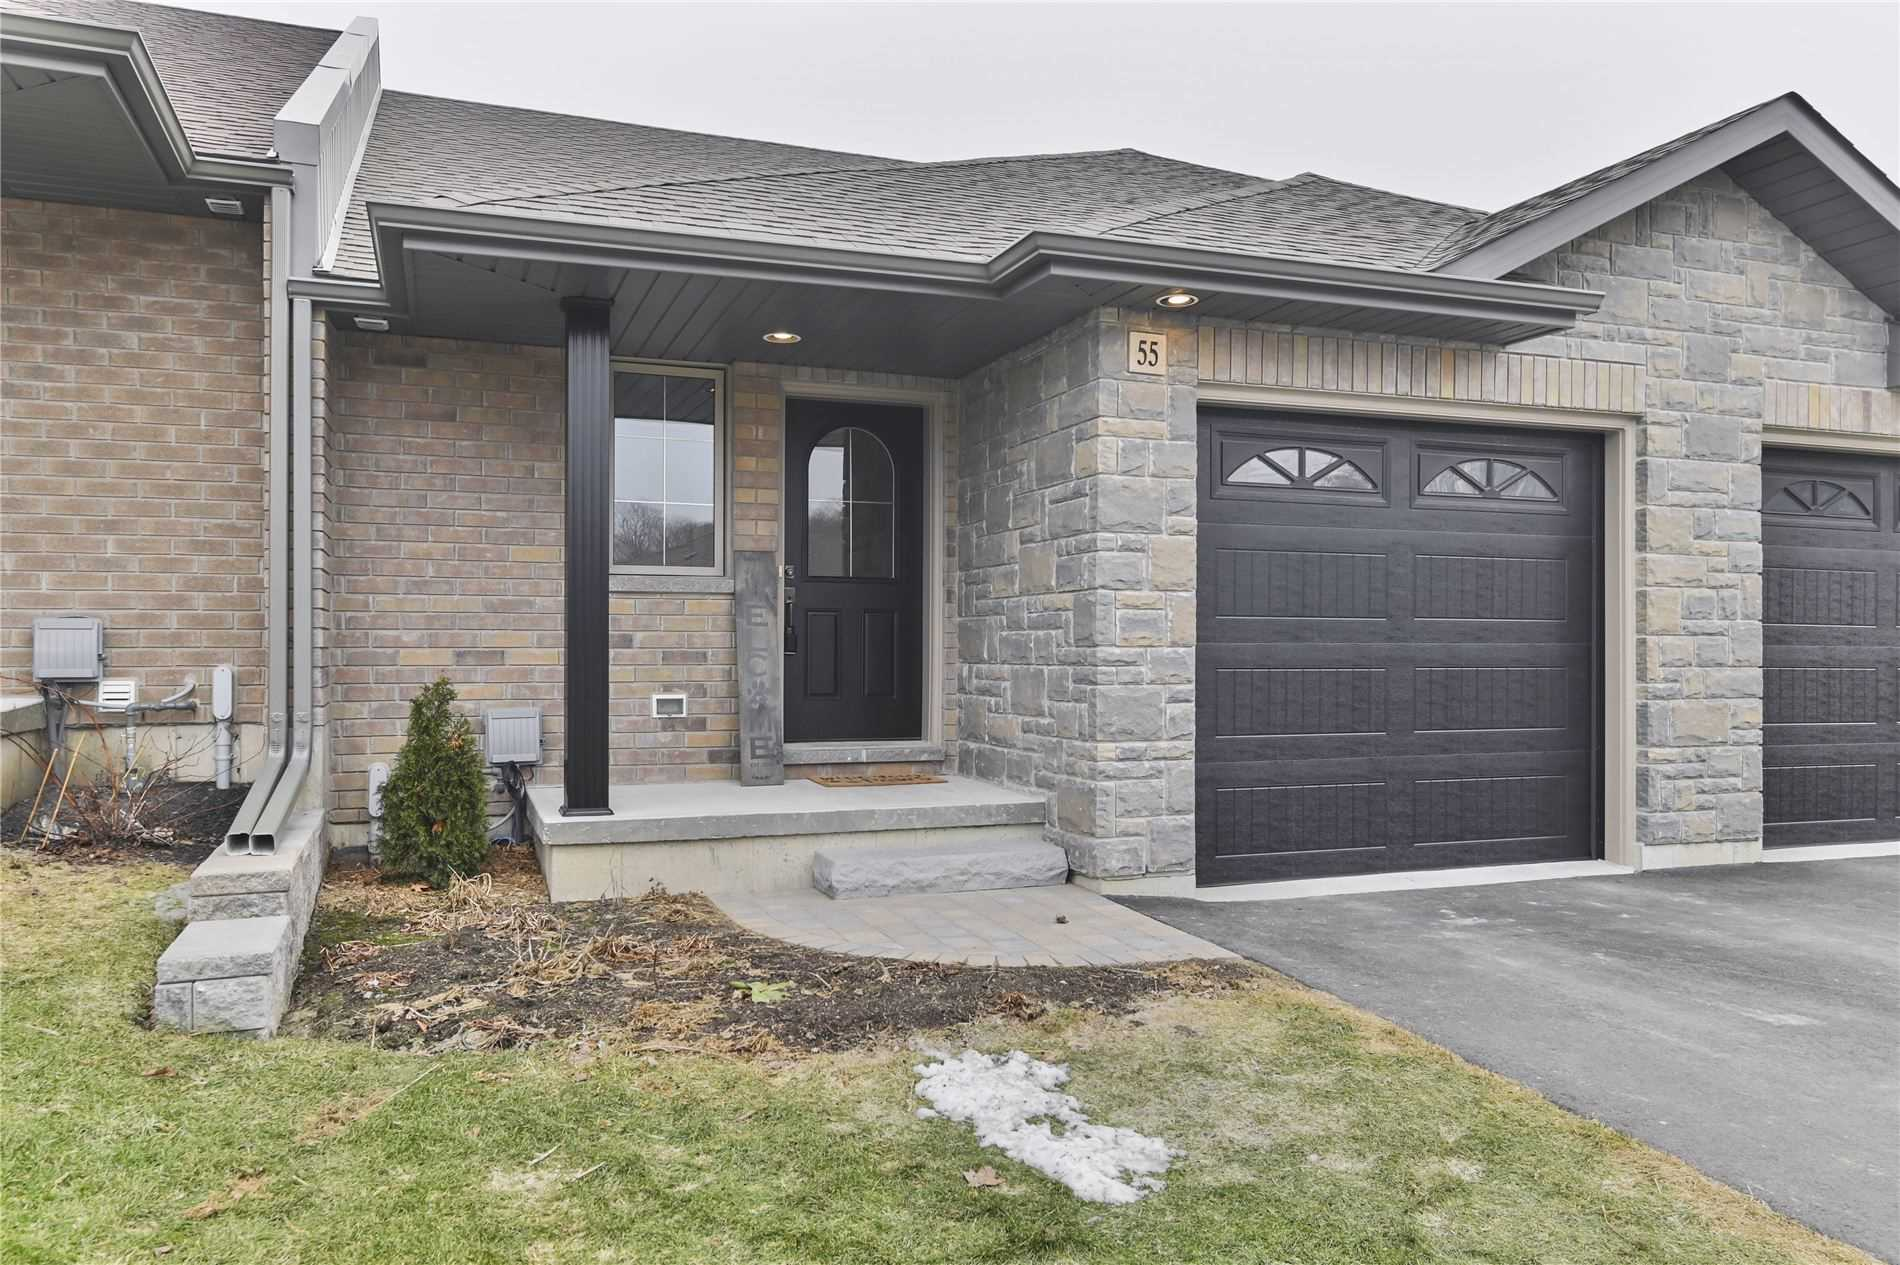 55 Liberty Cres, Quinte West, Ontario K8V 0G2, 1 Bedroom Bedrooms, ,3 BathroomsBathrooms,Att/row/twnhouse,For Sale,Liberty,X5156050